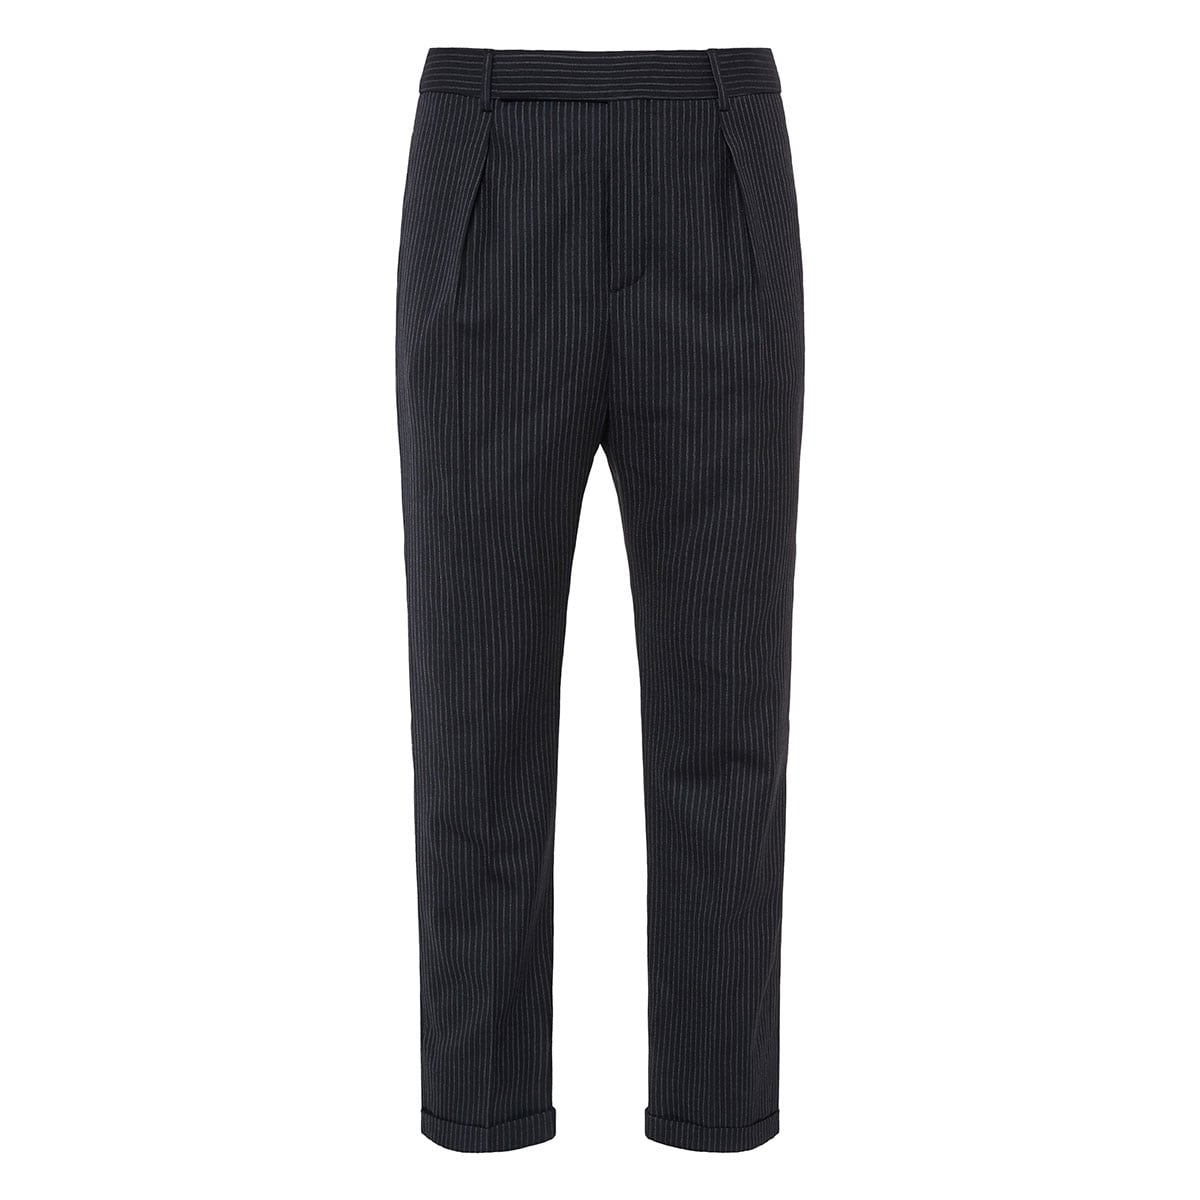 Pinstripe tailored trousers